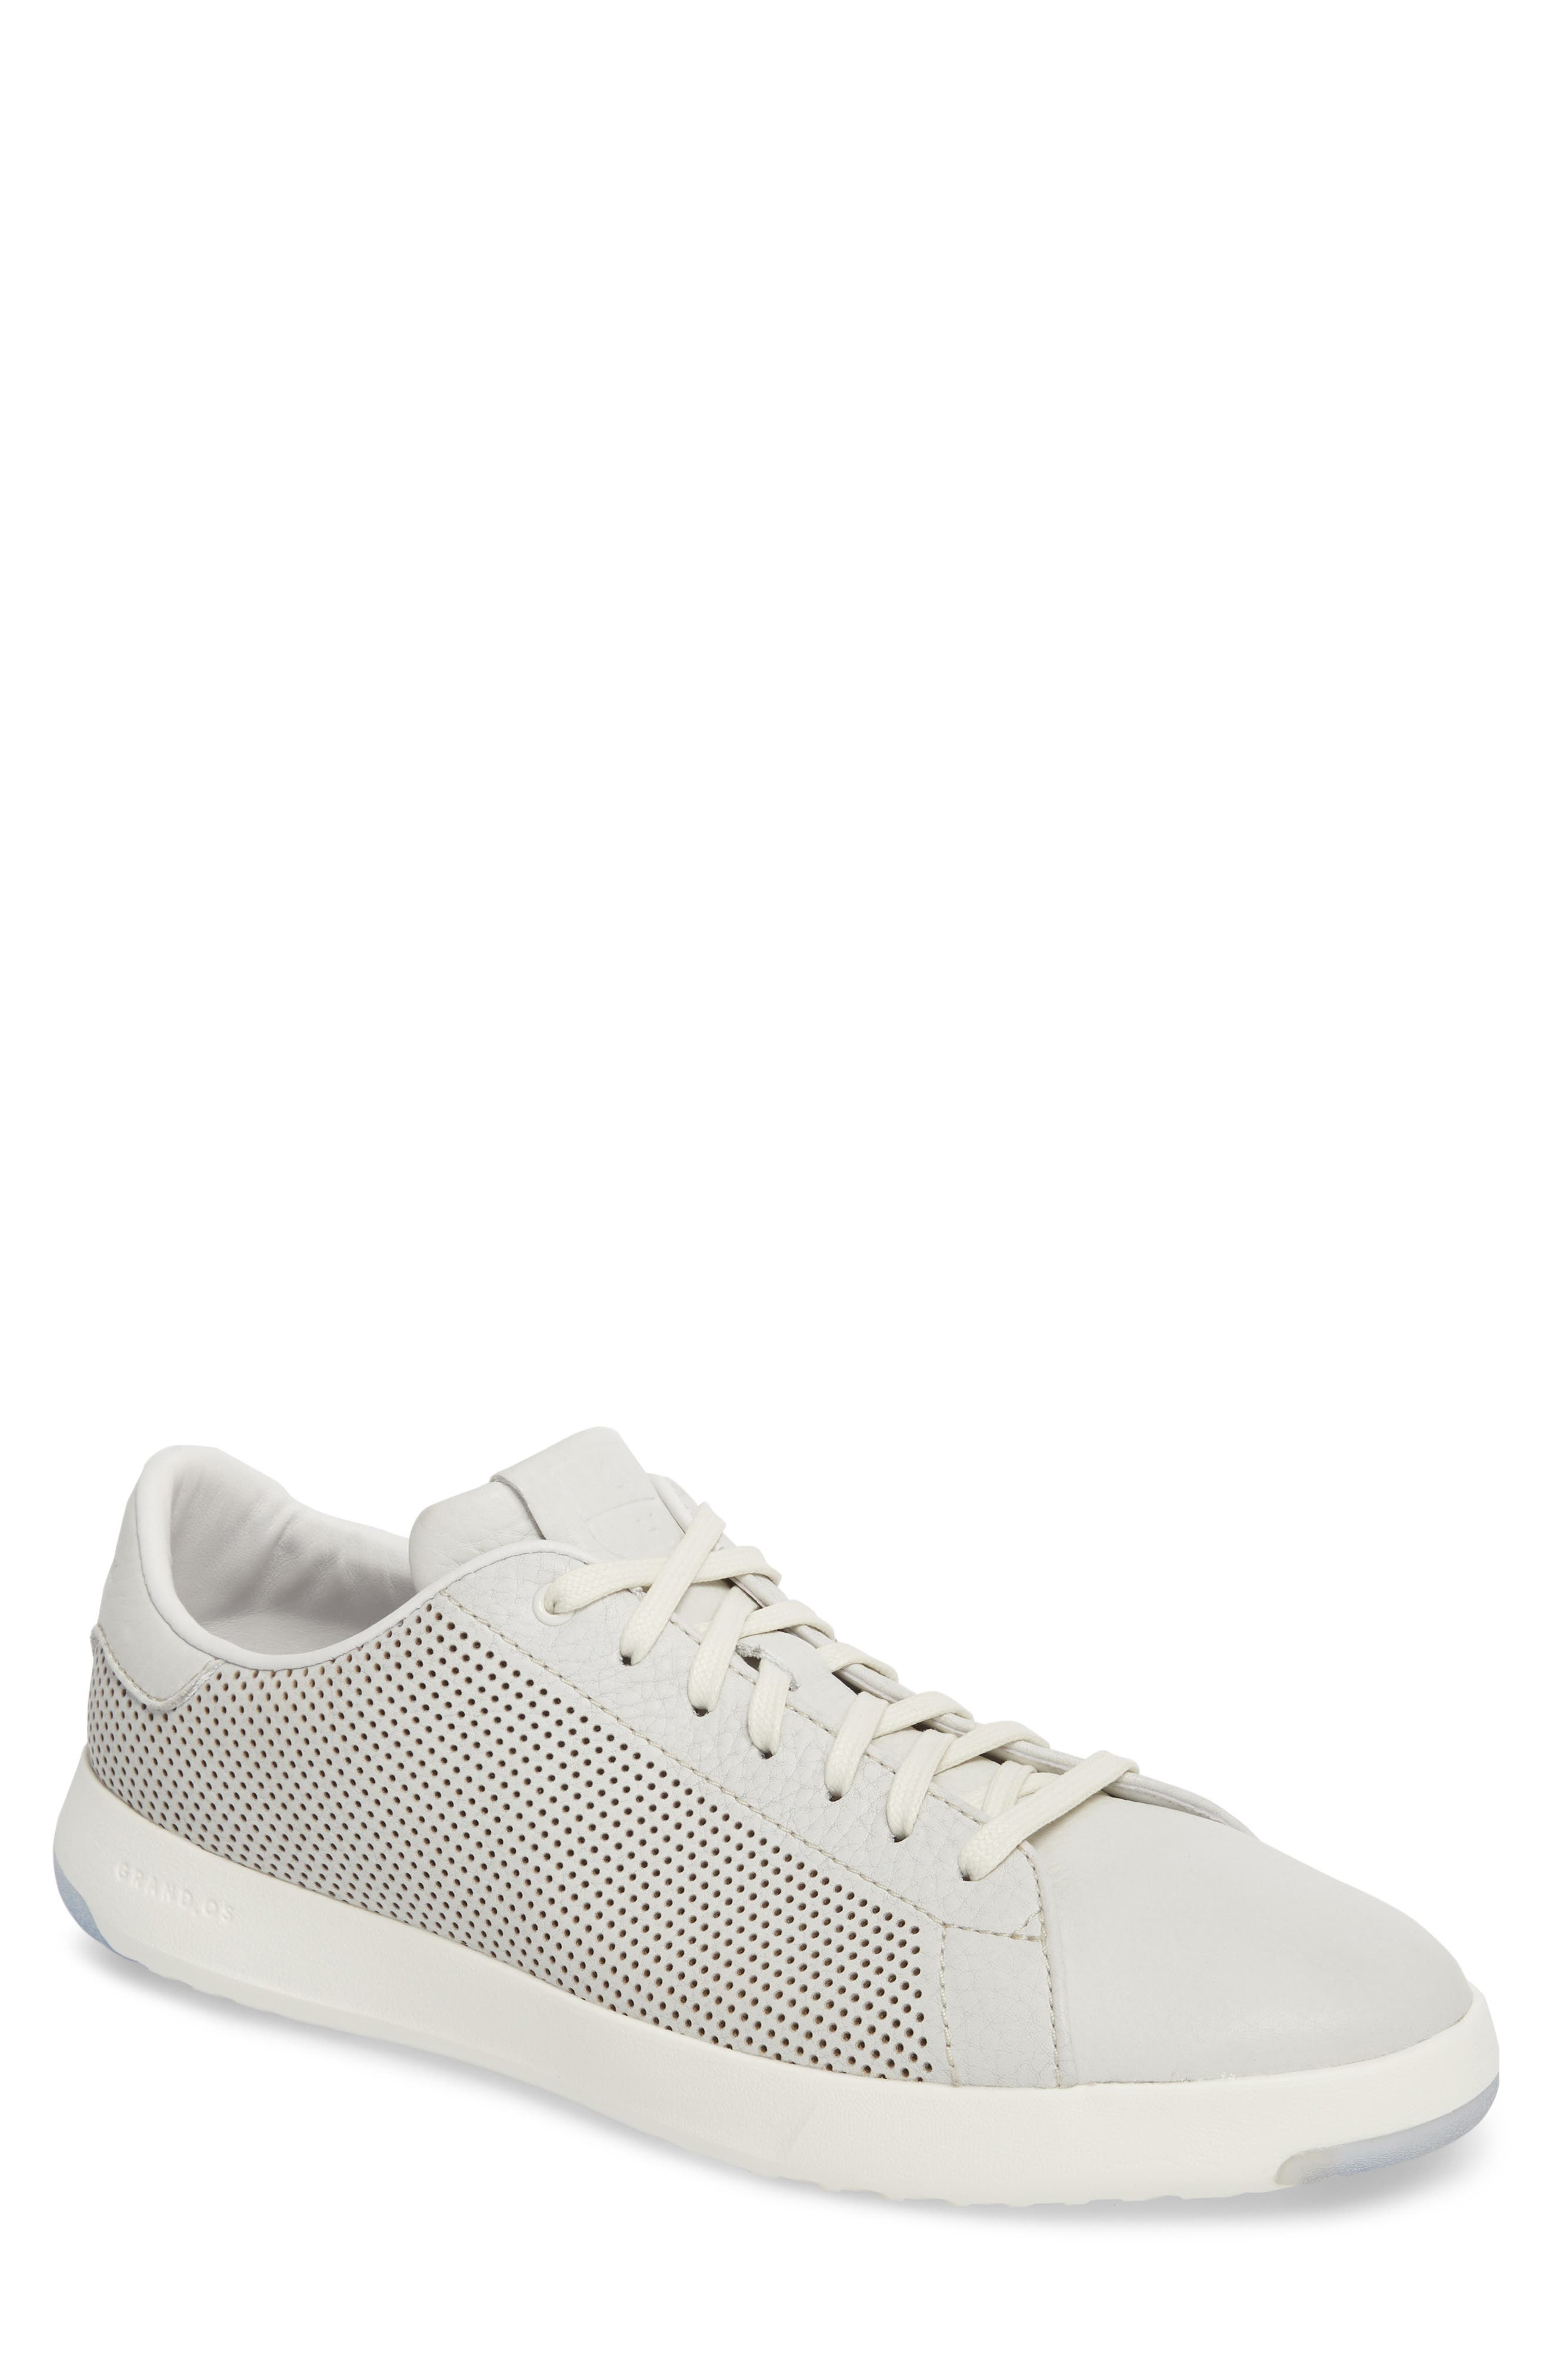 GrandPrø Perforated Low Top Sneaker,                         Main,                         color, WHITE TUM LEATHER